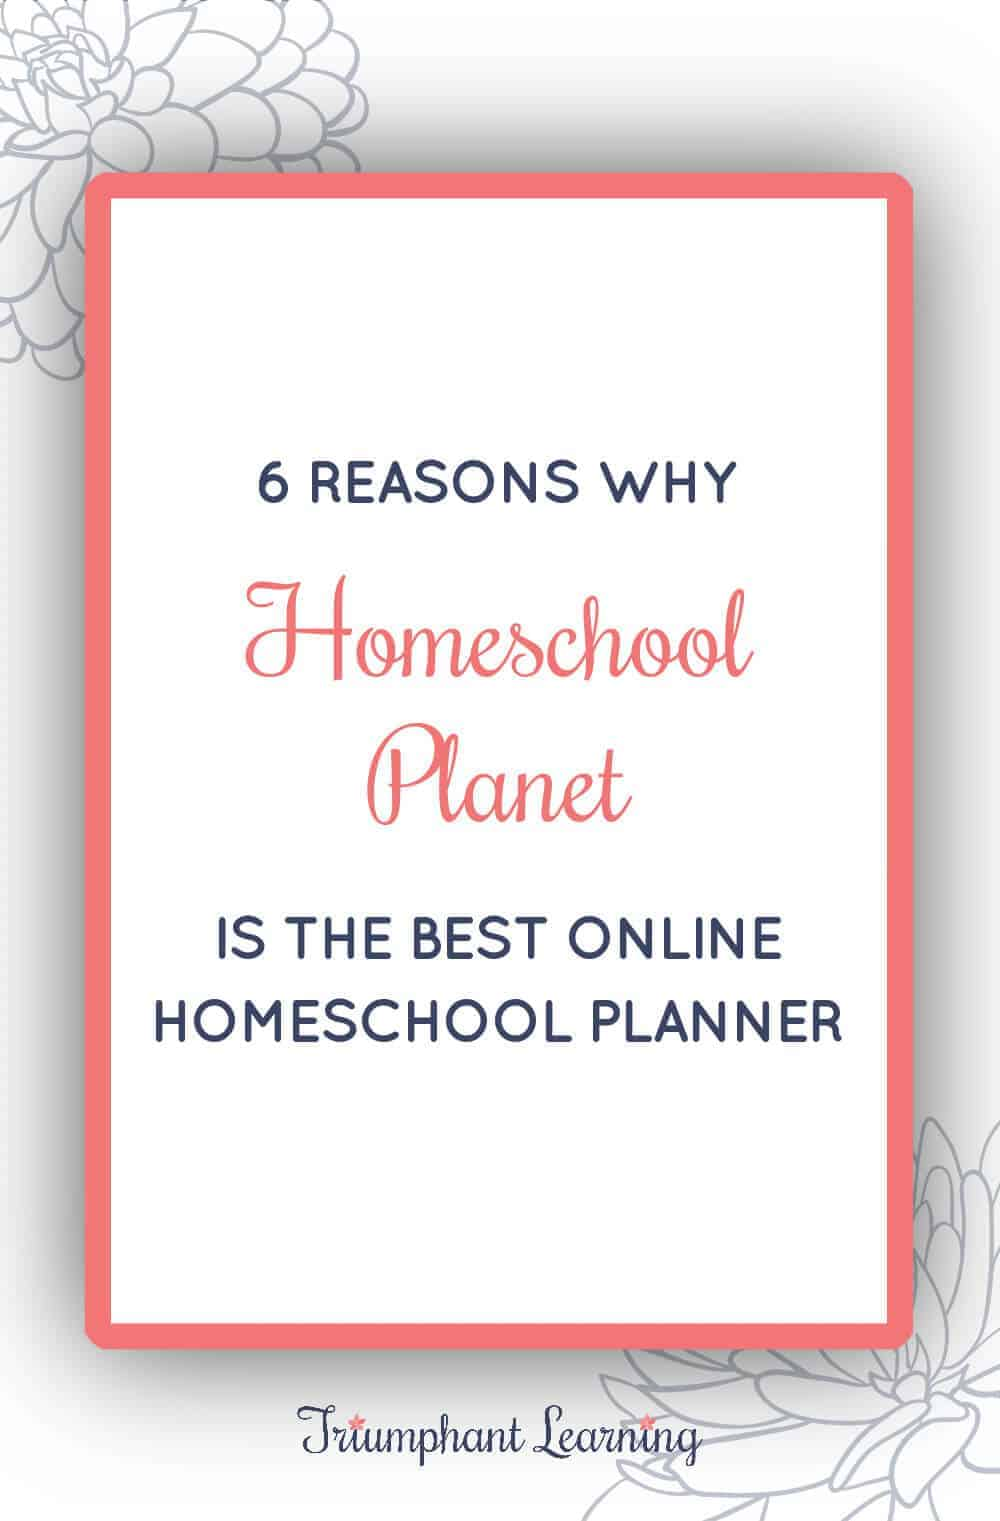 Homeschool Planet exceeded my demanding expectations. Find out why it is the best online homeschool planner. Plus watch a video review. via @TriLearning